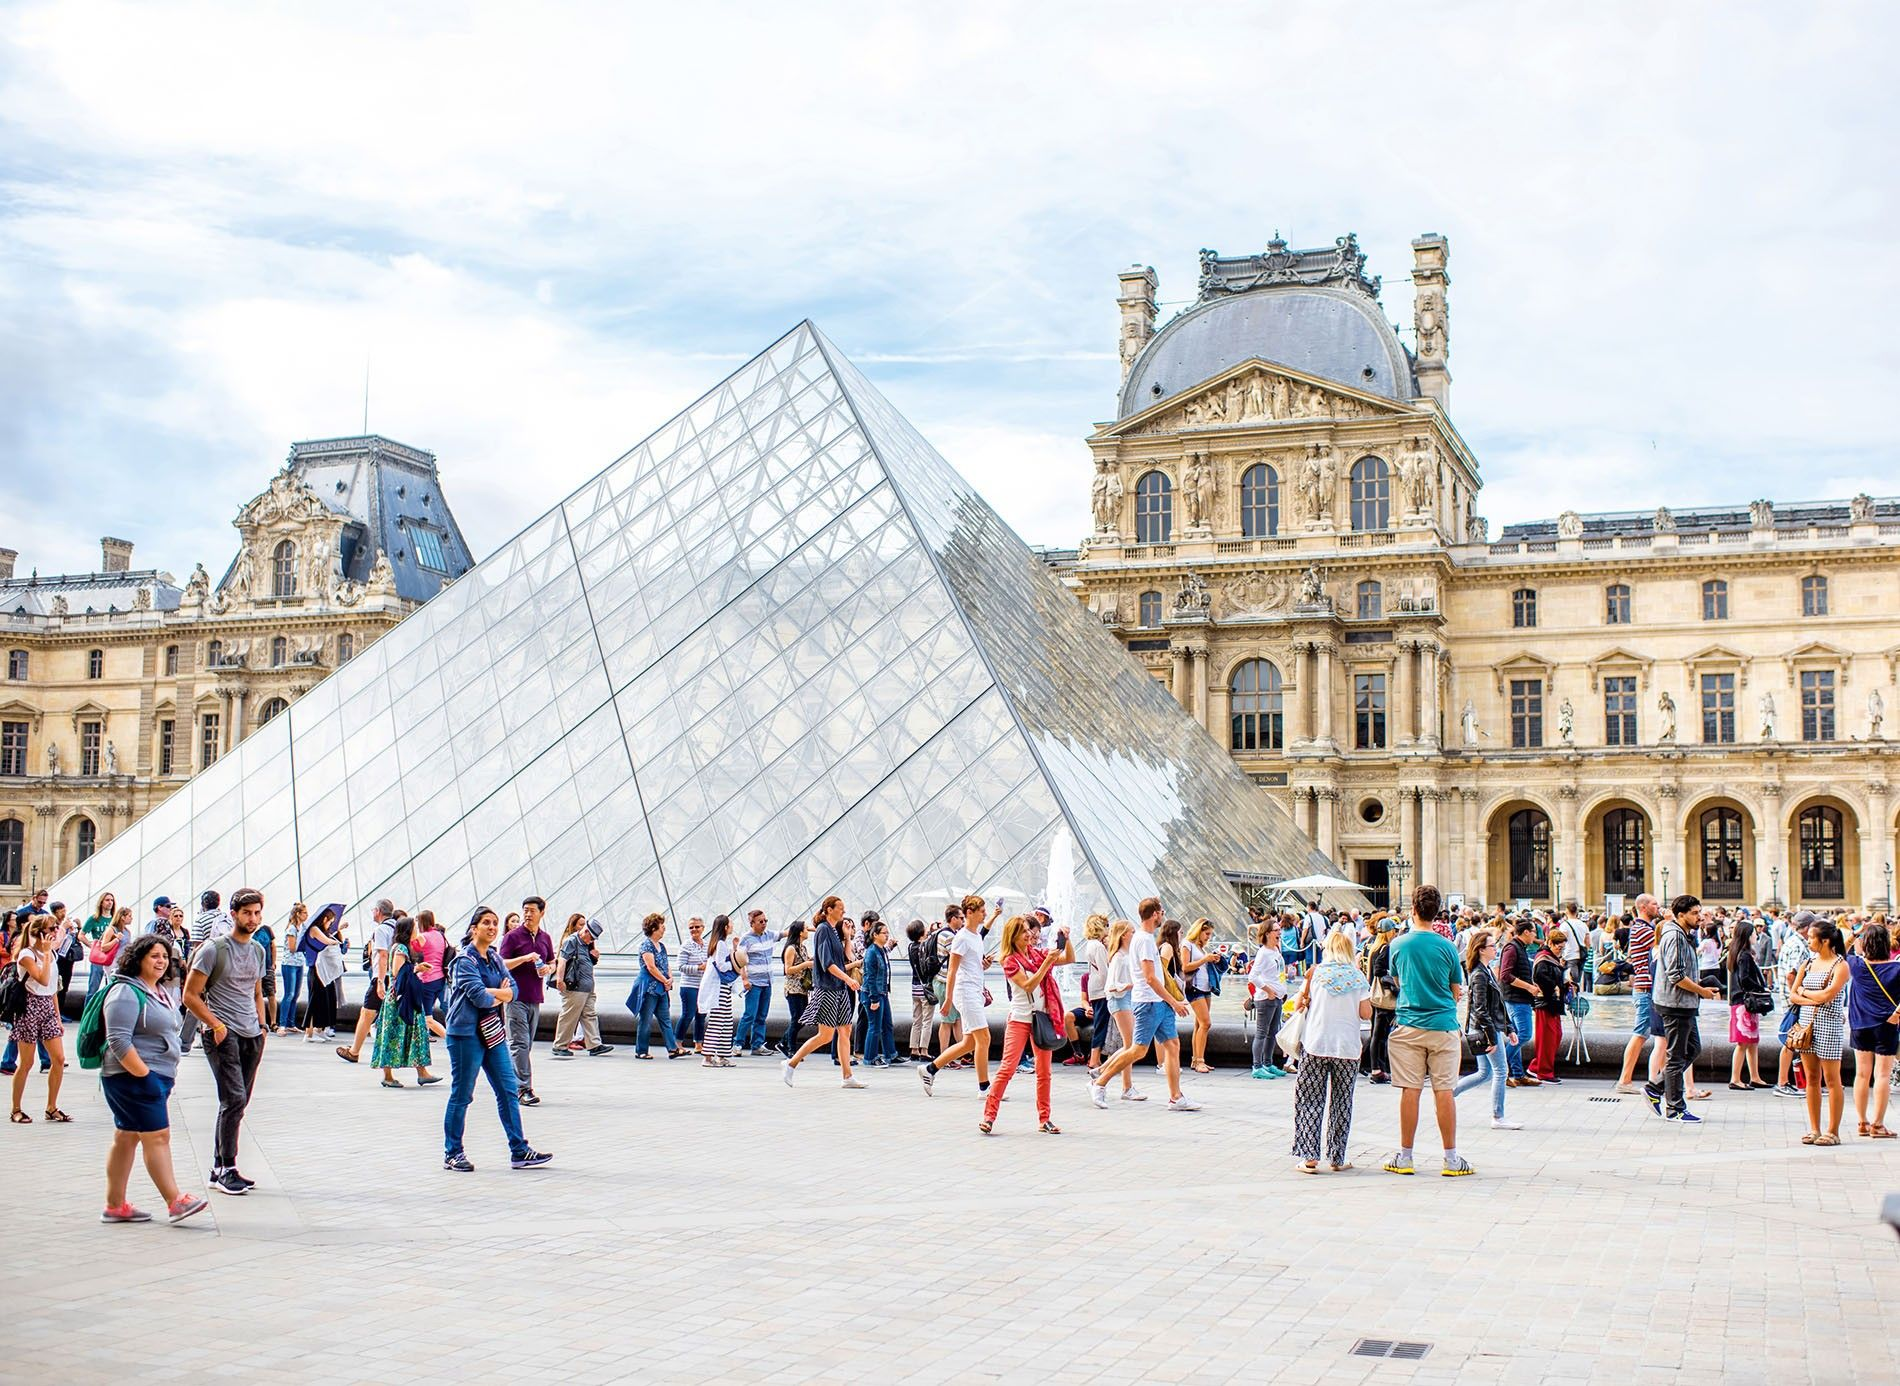 Tourists outside the Louvre